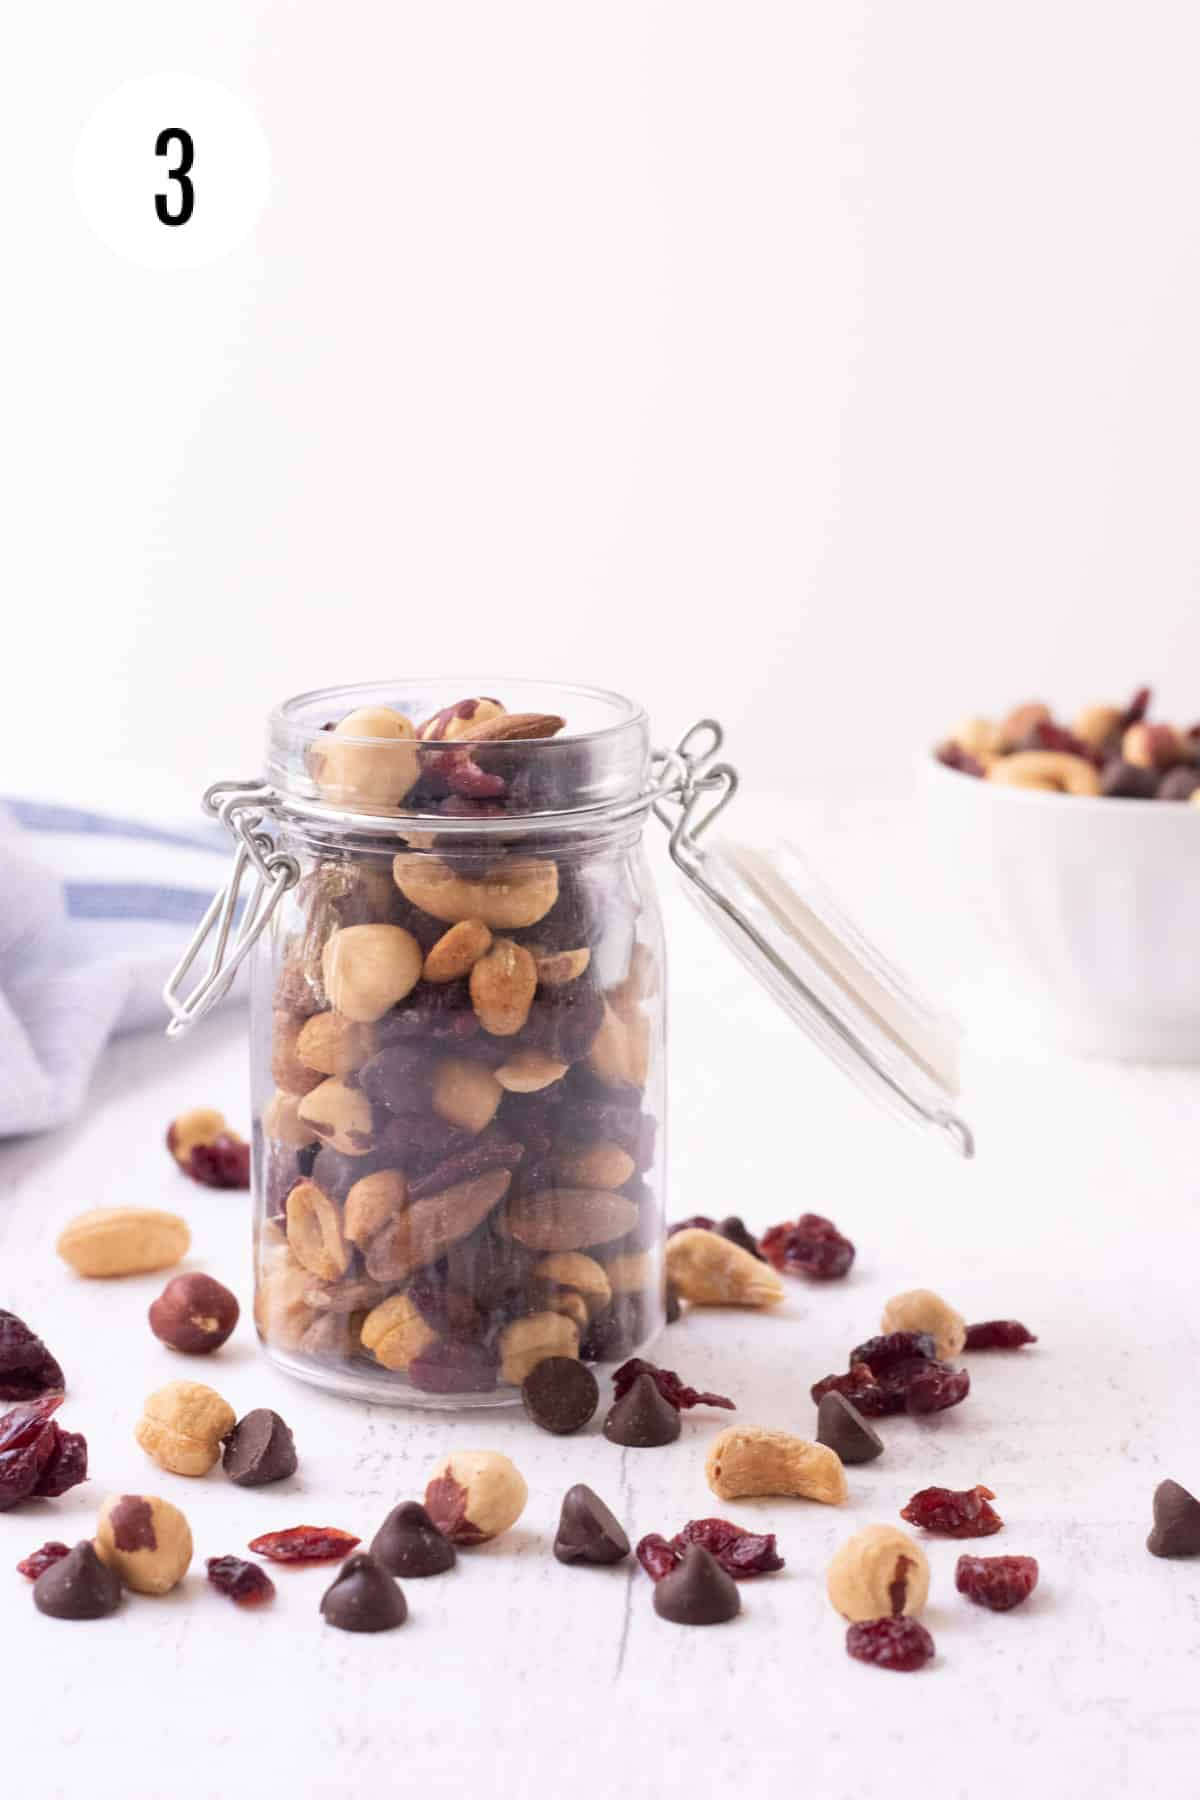 Glass jar with dark chocolate cherry trail mix and ingredients in foreground with white bowl of trail mix in background.